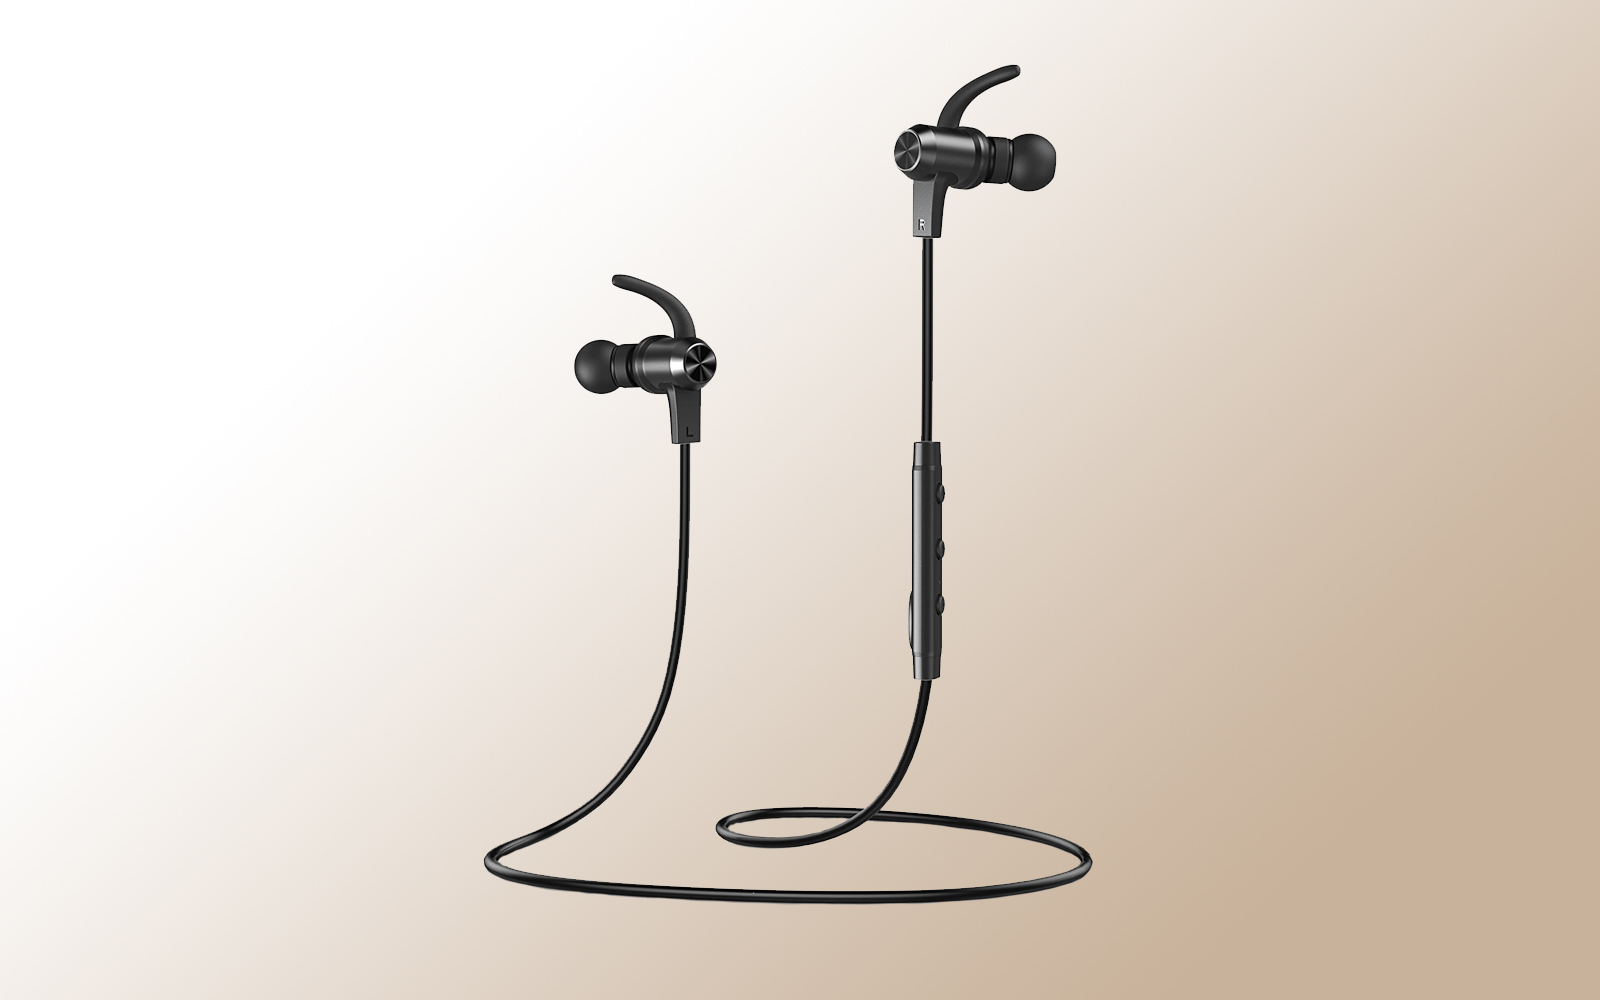 These Wireless Headphones Have 1 400 Five Star Amazon Reviews And They Re 50 Off Right Now Travel Leisure